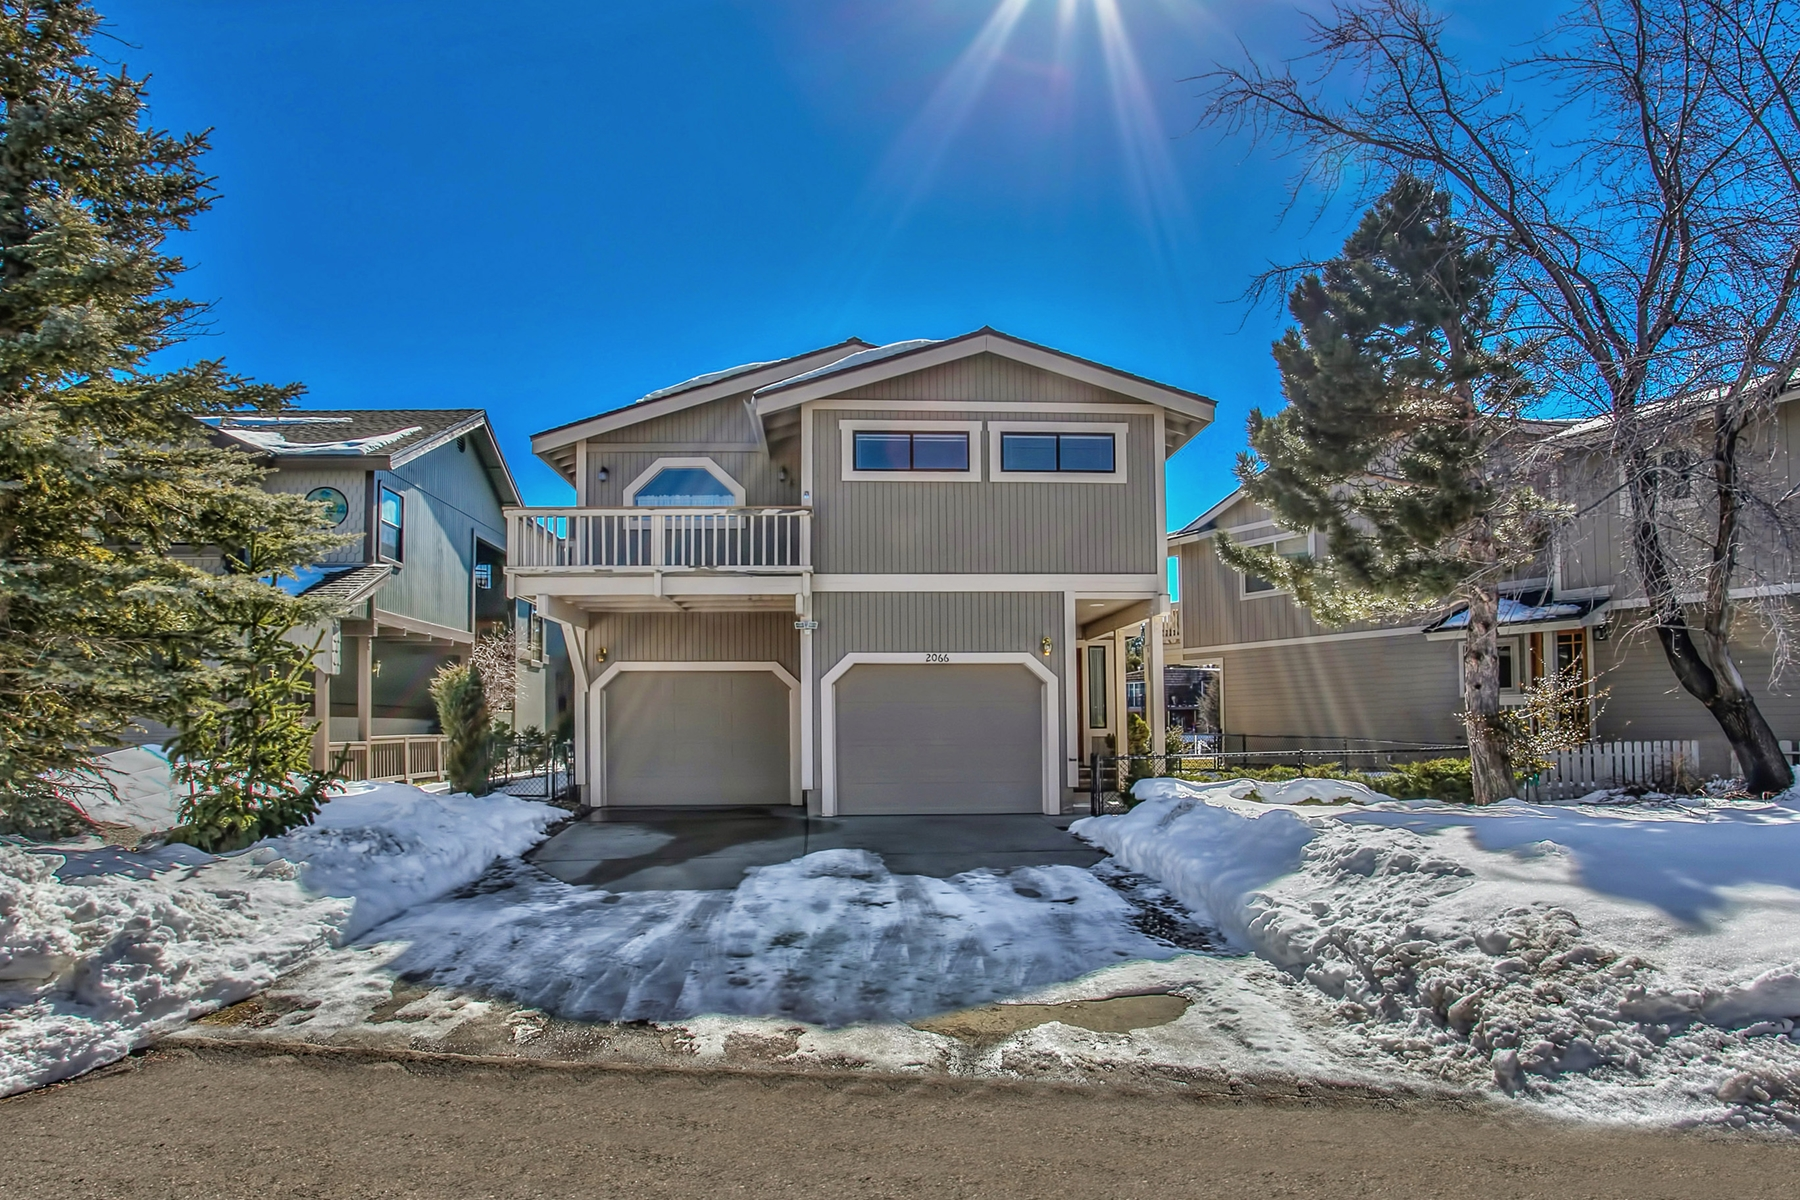 Single Family Home for Active at 2066 Traverse Court South Lake Tahoe, California 96150 United States